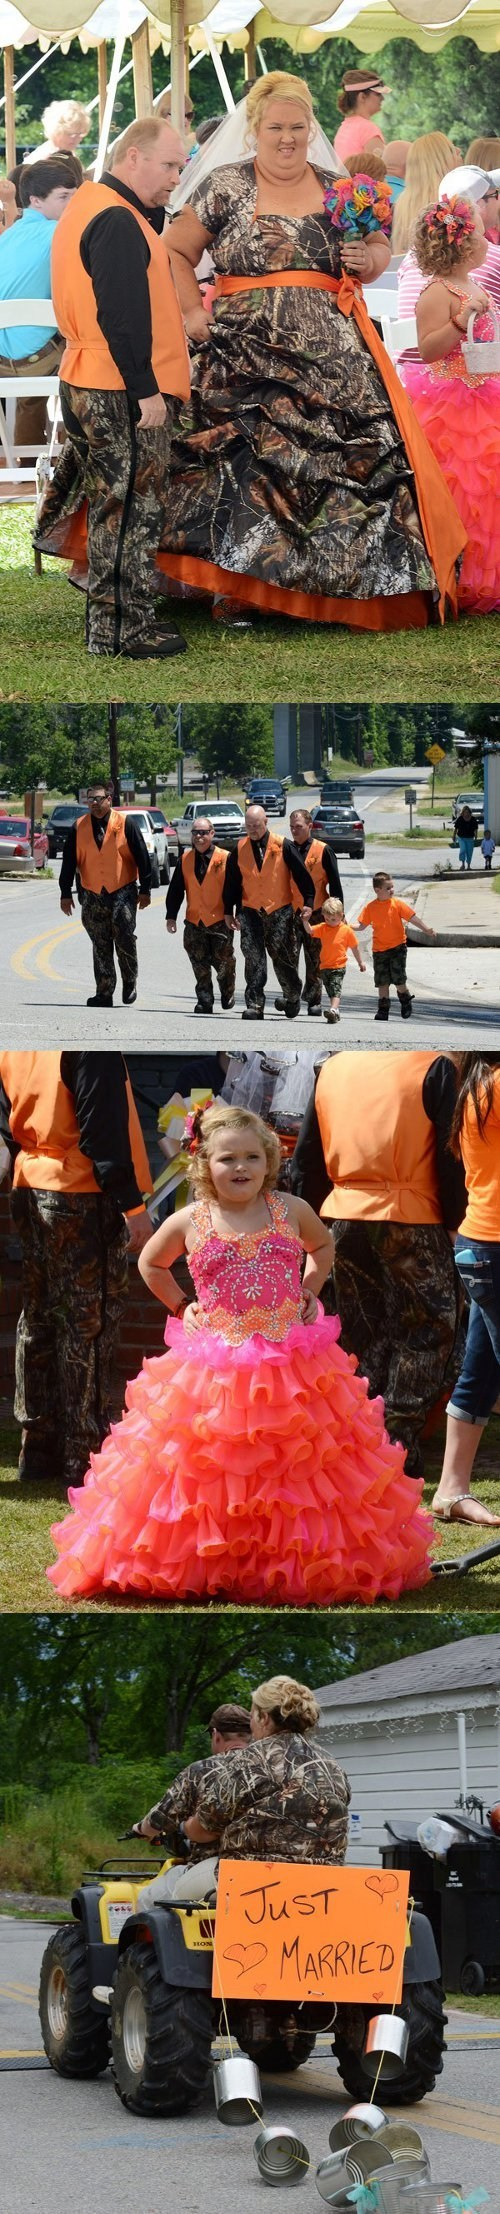 here comes honey boo boo wedding reality tv